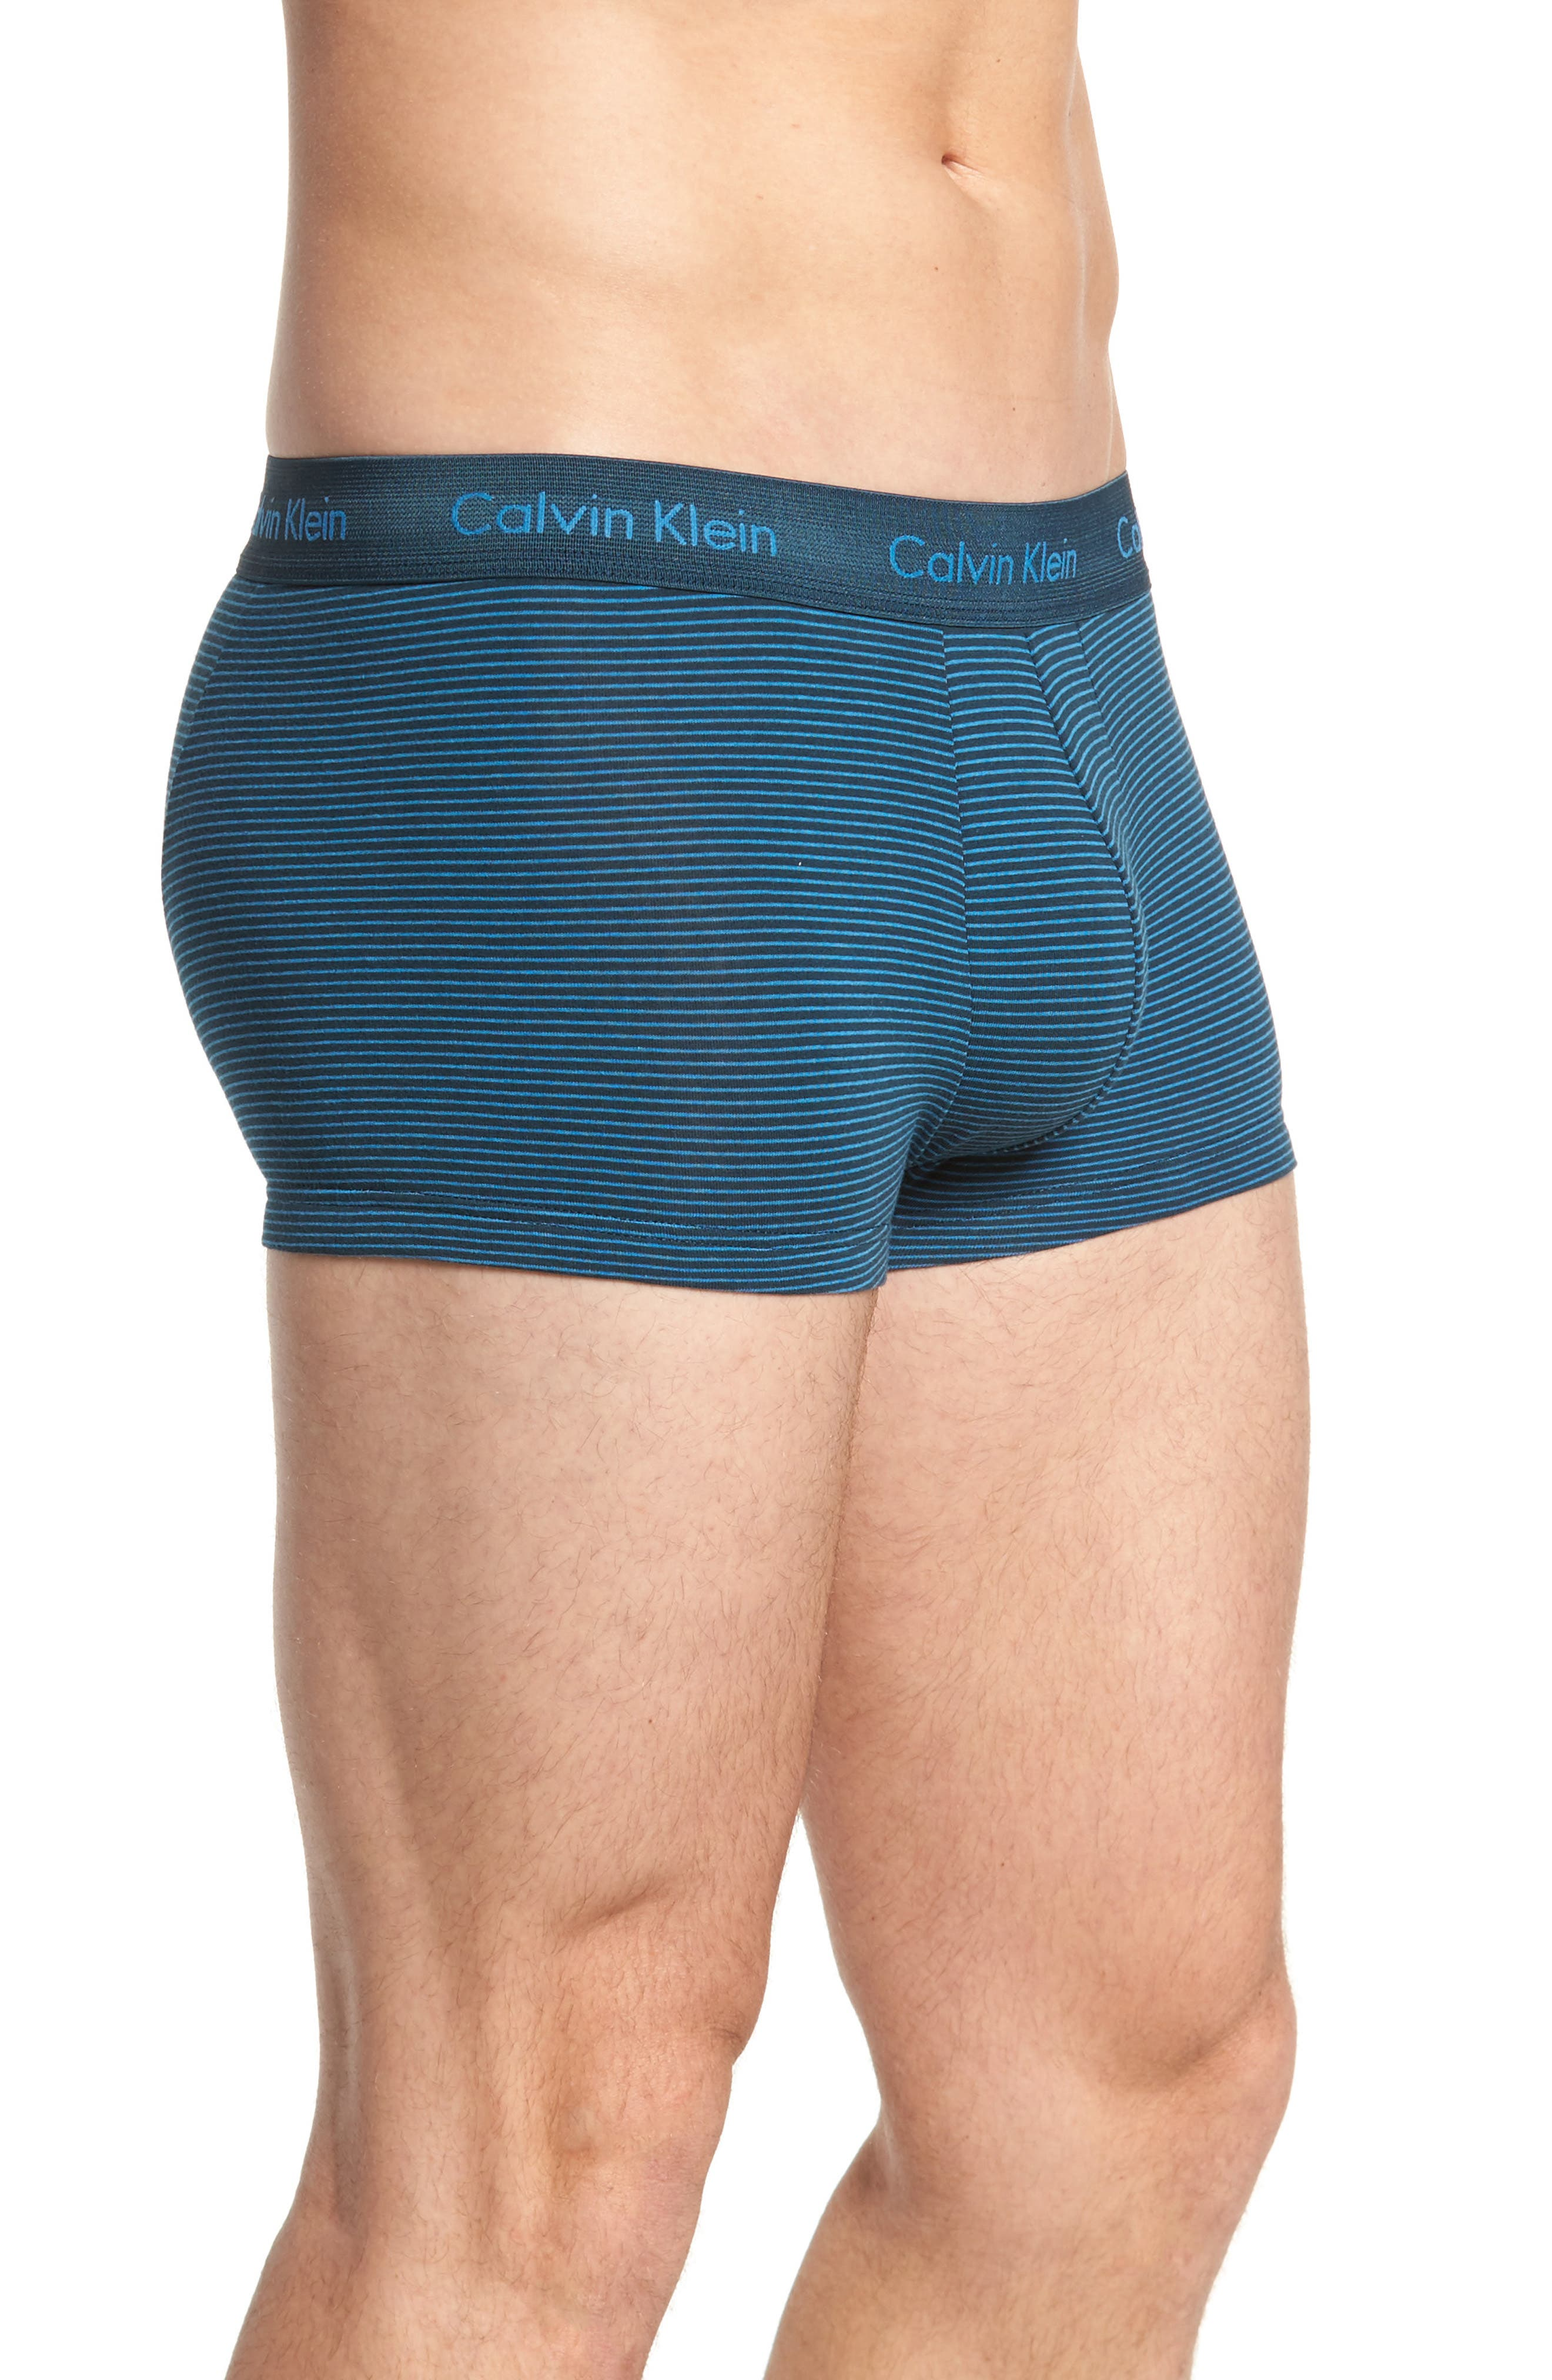 3-Pack Stretch Cotton Low Rise Trunks,                             Alternate thumbnail 4, color,                             BLUE/ SPELLBOUND/ FERVENT